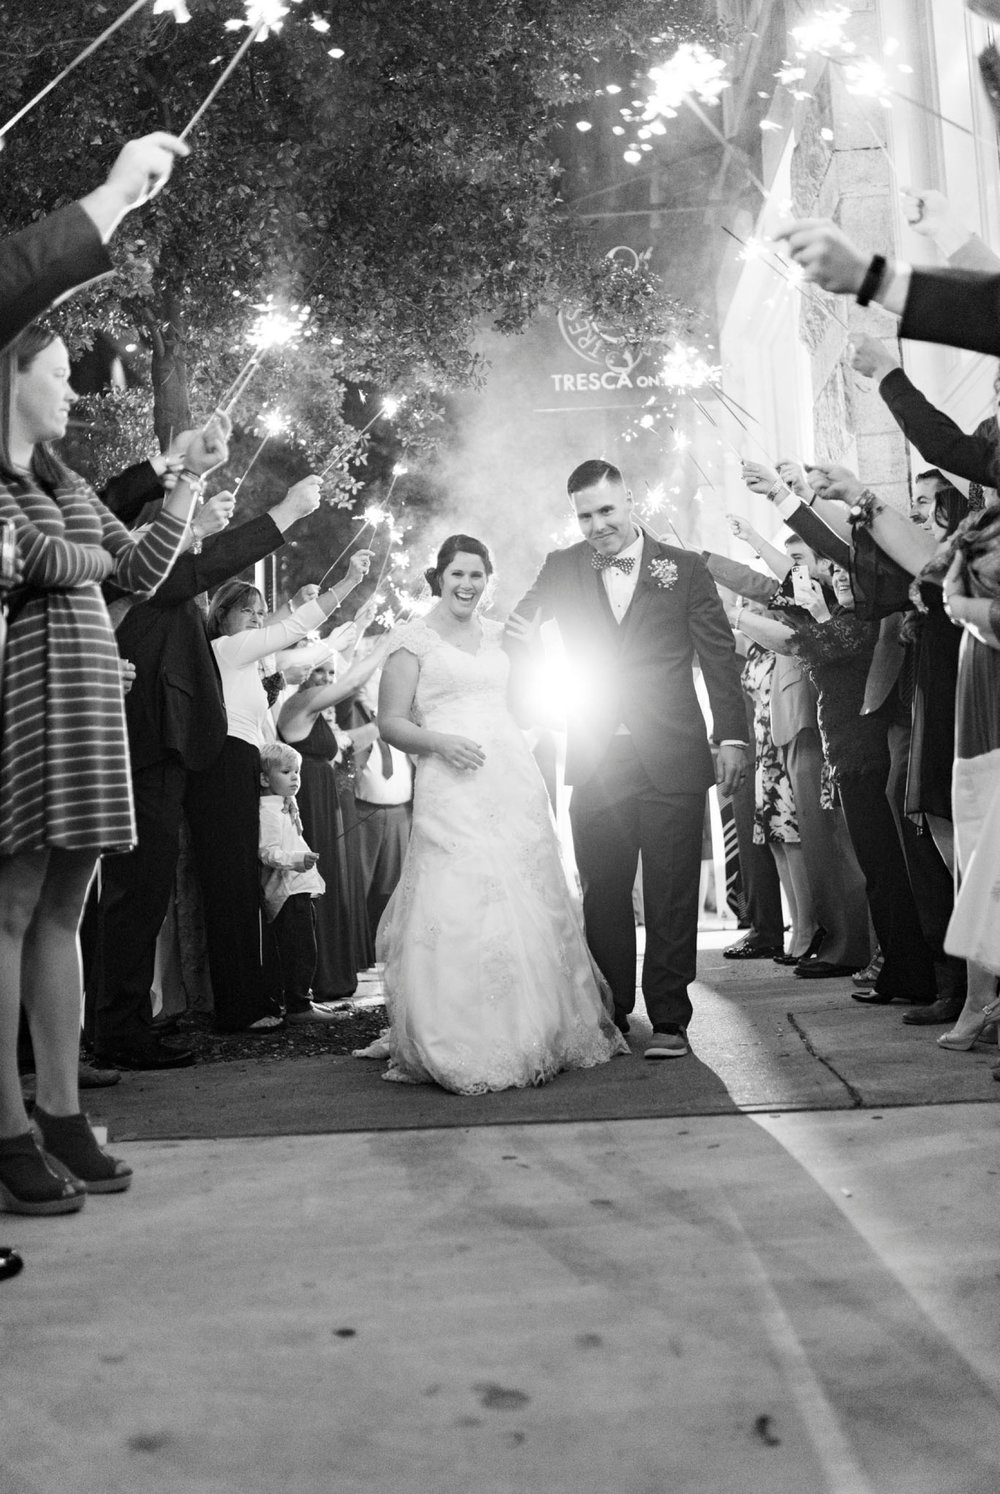 Trescaon8th_DowntownLynchburg_Virginiaweddingphotographer 100.jpg